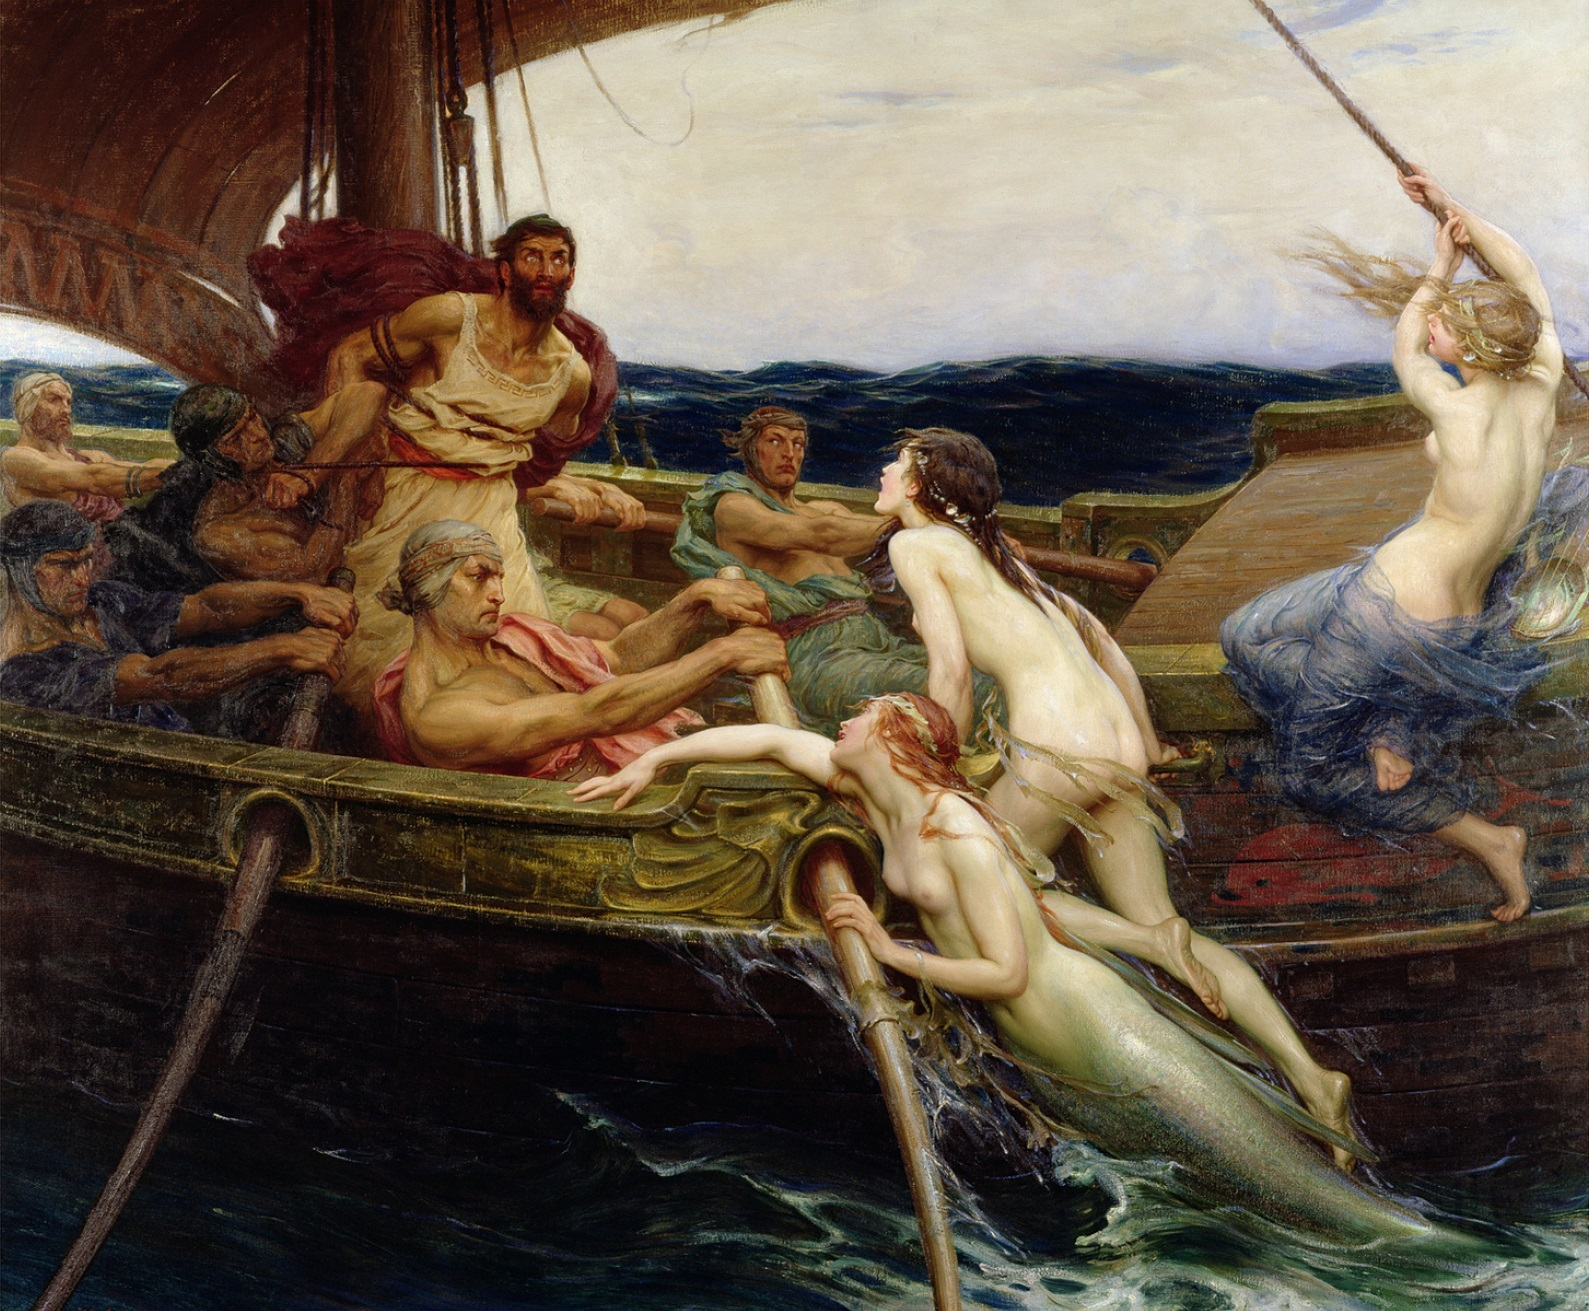 Fichier:Draper Herbert James Ulysses and the Sirens.jpg